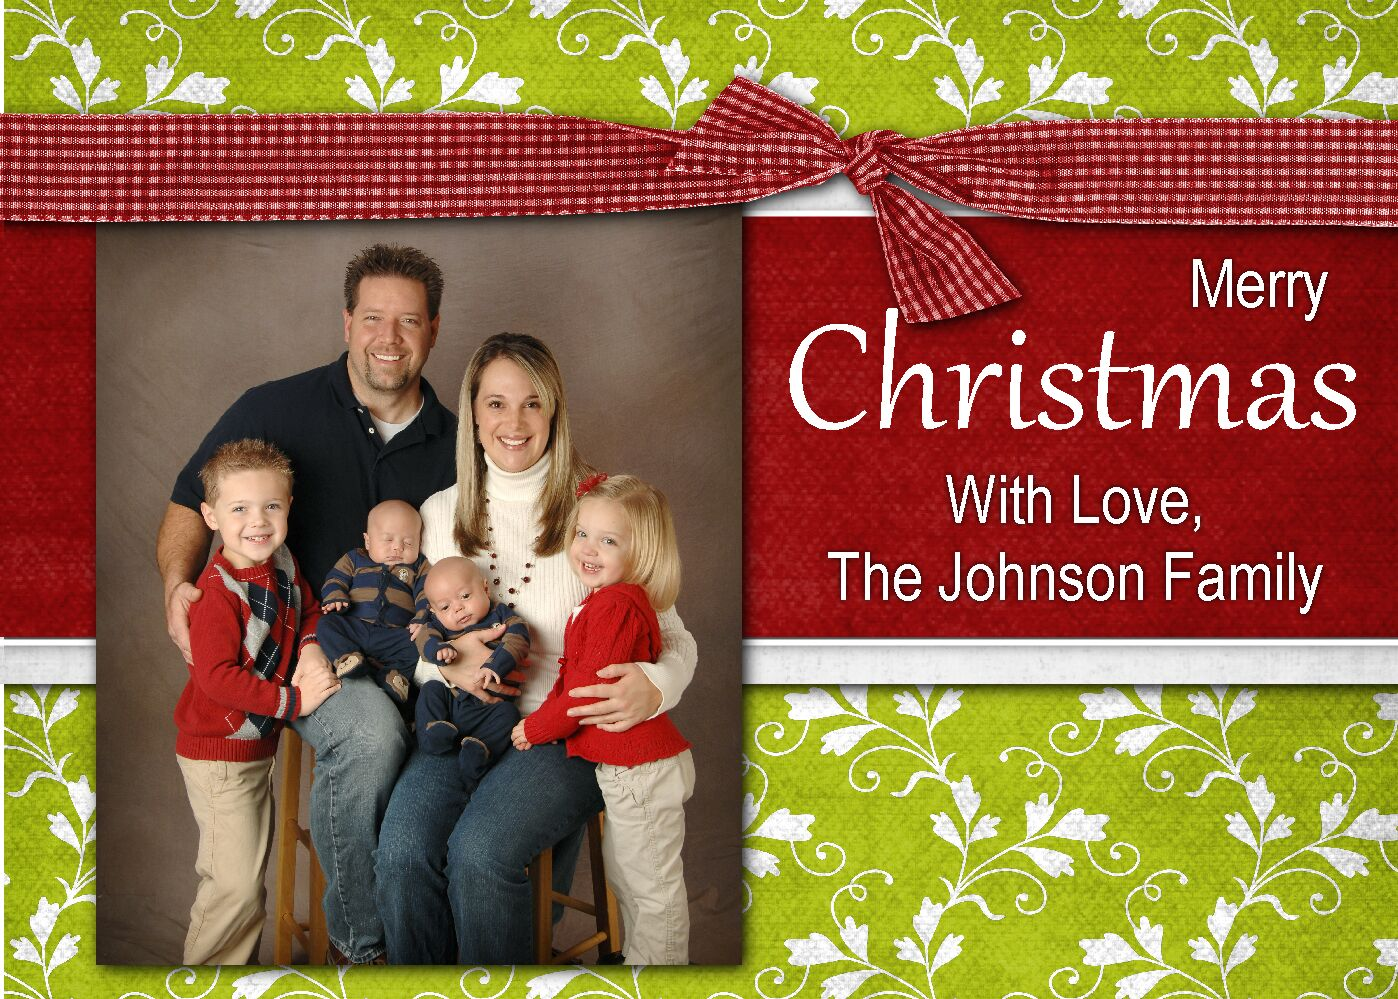 GeneaWebinars: Create your own Christmas cards and share Family ...